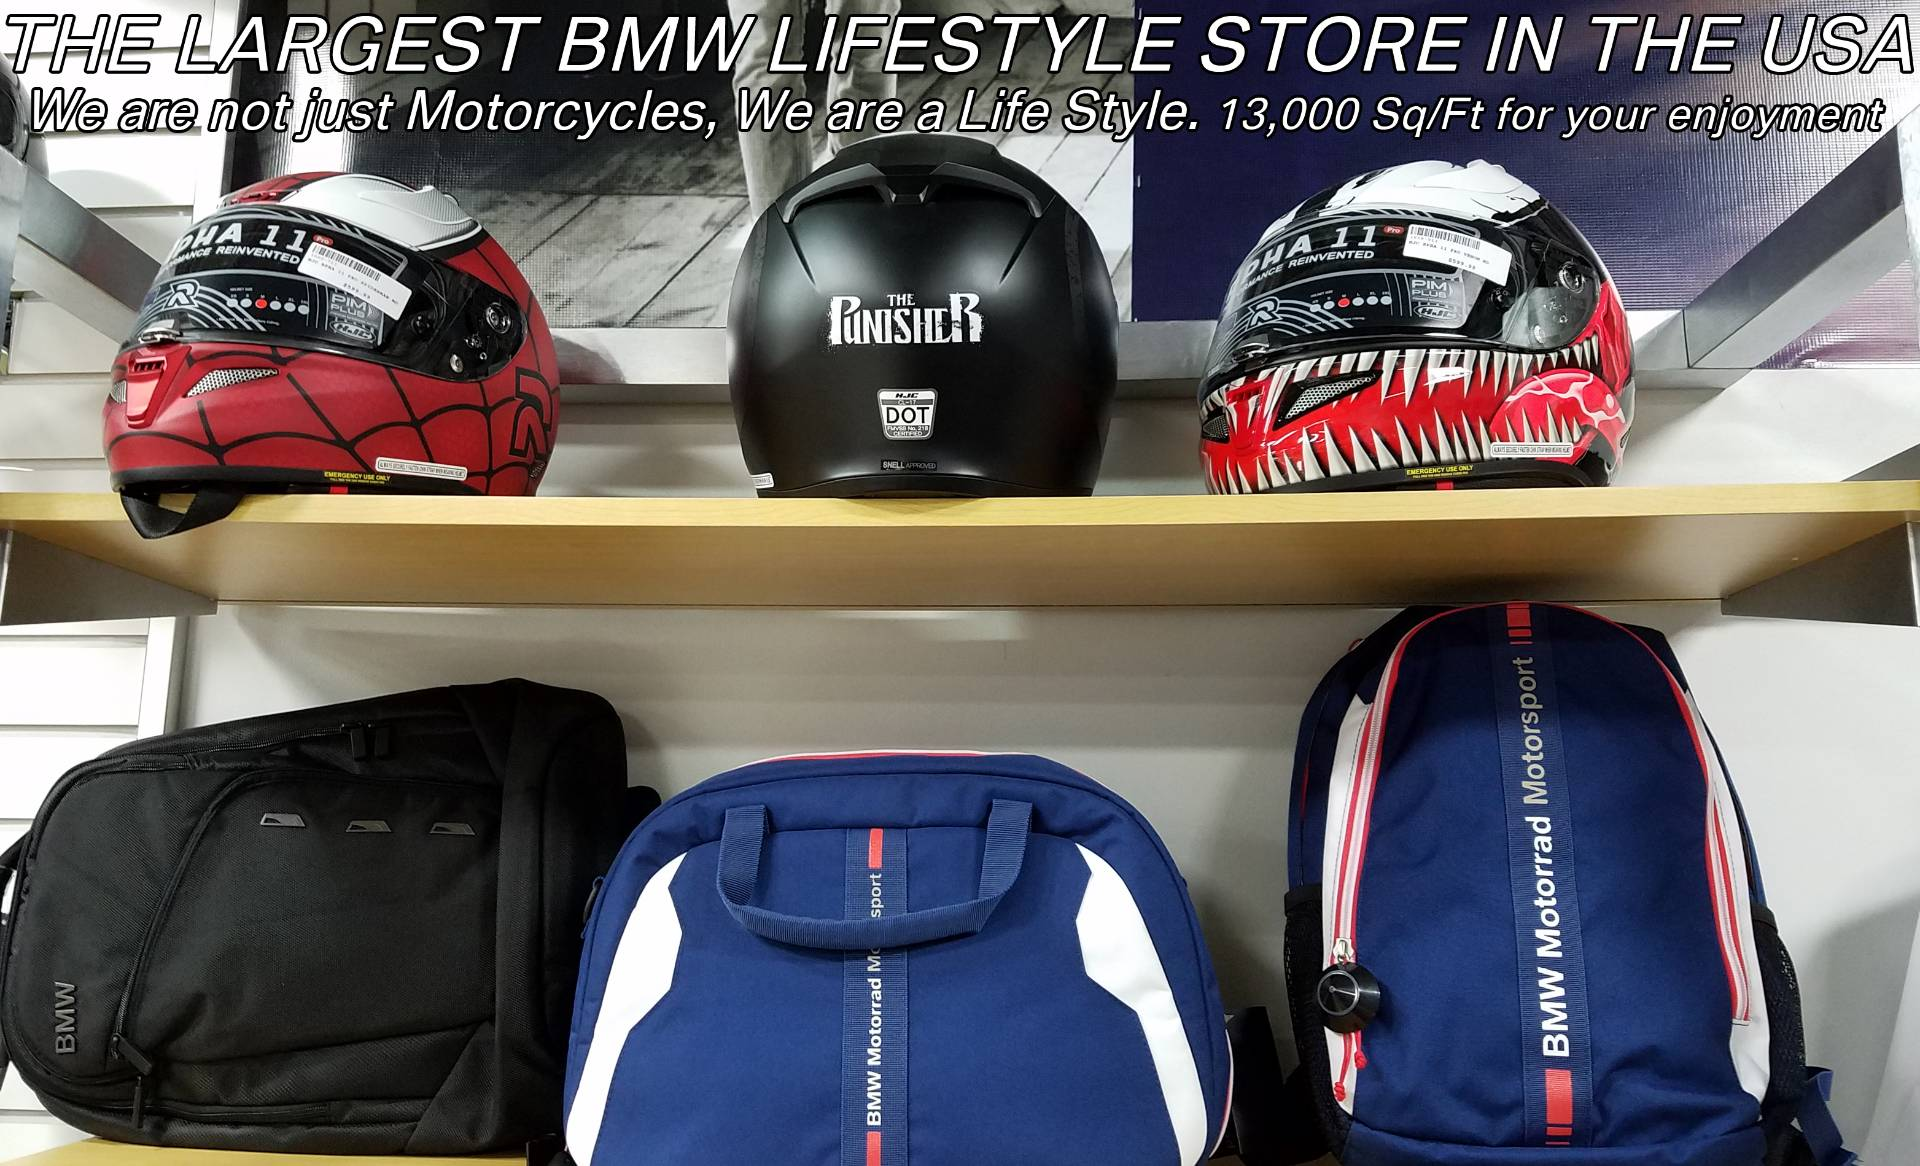 Used 2018 BMW R 1200 GS for sale, BMW R 1200GS for sale, BMW Motorcycle R1200GS, used BMW 1200GS, DUAL, GSA, BMW. BMW Motorcycles of Miami, Motorcycles of Miami, Motorcycles Miami, New Motorcycles, Used Motorcycles, pre-owned. #BMWMotorcyclesOfMiami #MotorcyclesOfMiami. - Photo 44